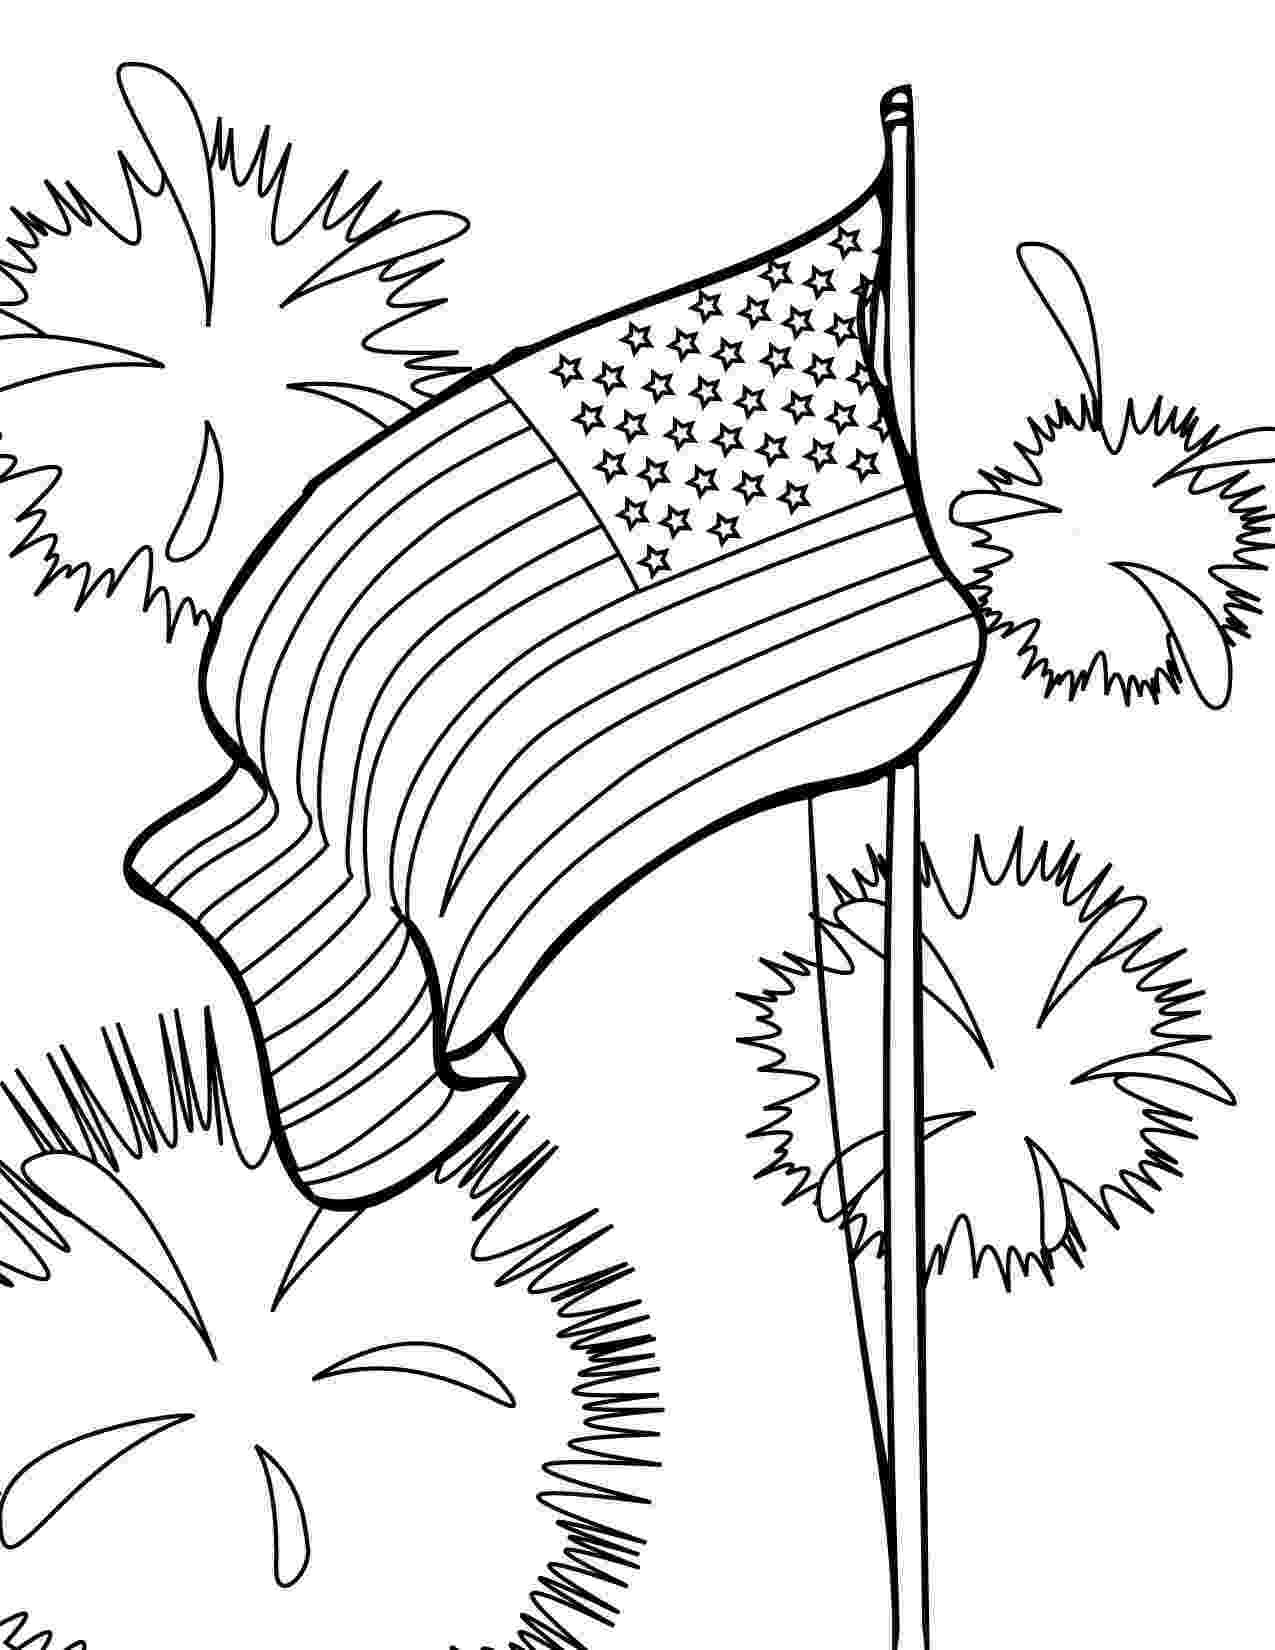 free coloring pages for memorial day 25 free printable memorial day coloring pages memorial free day pages coloring for